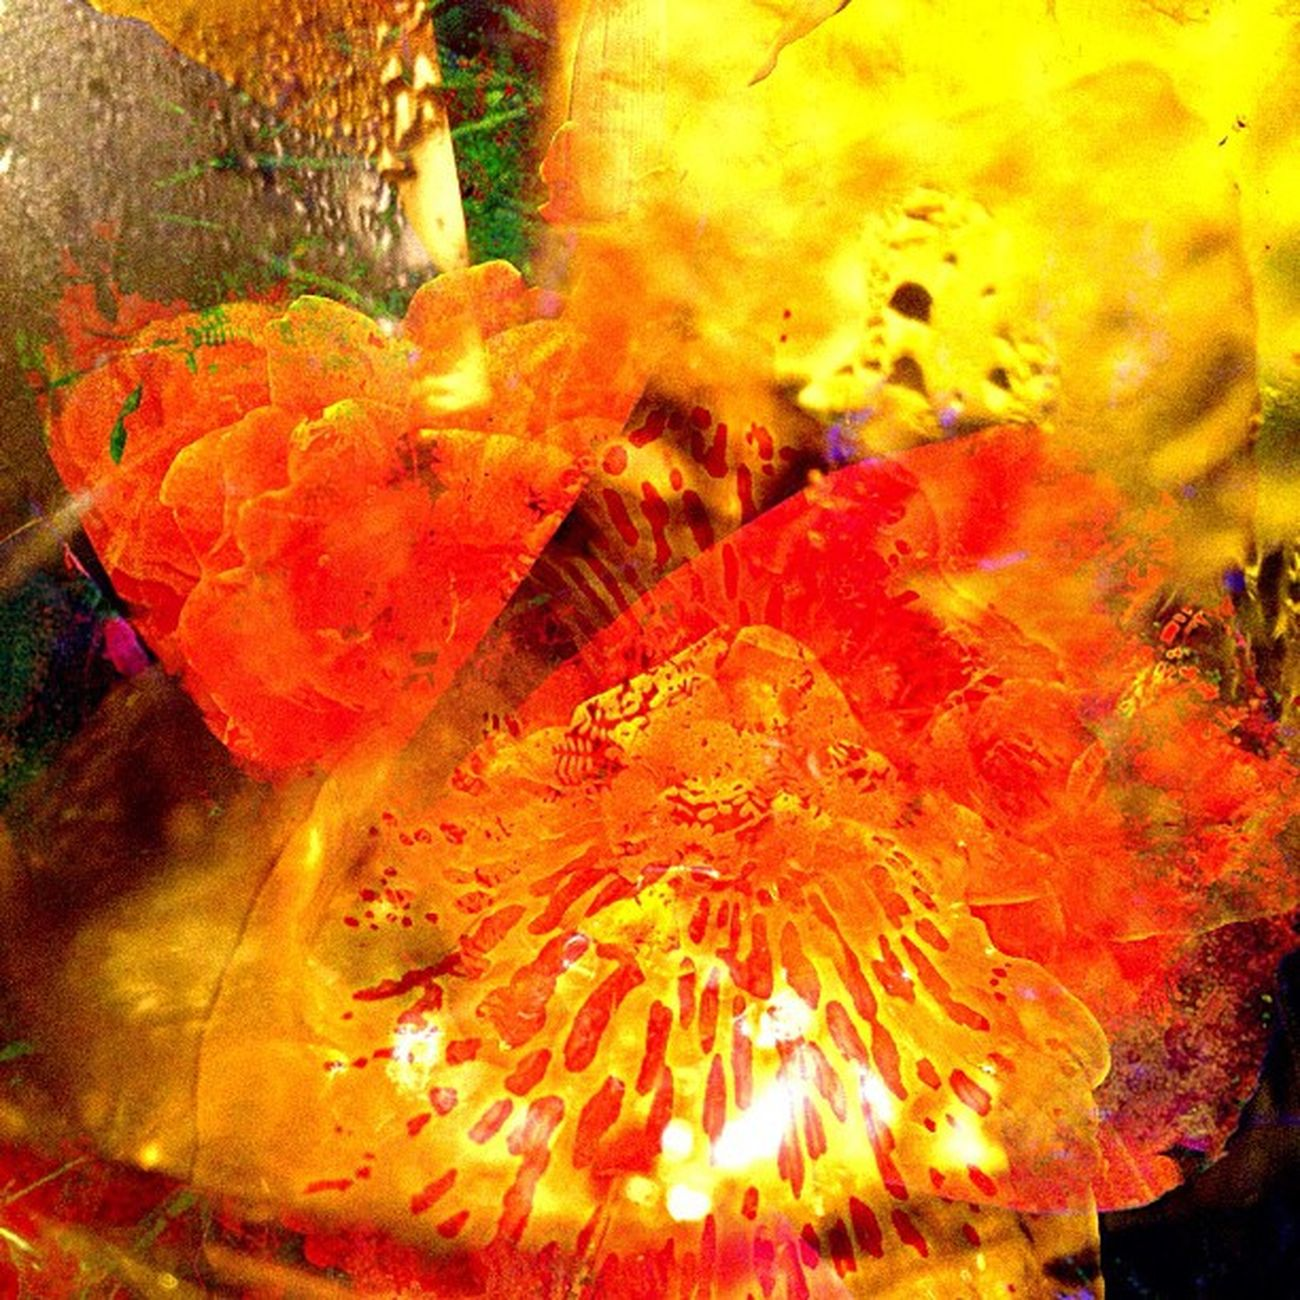 The Colors of Joy & Gratitude (1 of 3) Dedicated to all those who follow and shower me with loving sentiments. You make my days brighter Ig_captures Happycolortrip Abstracto Coloronroids All_shots Orangewednesday StayABSTRACT Dhexpose Abstractart Ace_ Gang_family Deadlydivas Editjunky Ig_one Mobileartistry Icatching Instauno Femme_elite Igsg Weareinheaven Bd You_nique_edits Abstracters_anonymous Mi55flowerz Abstract_buff Edit_fever Abstractobsession Jj_forum_0541 Instaabstract